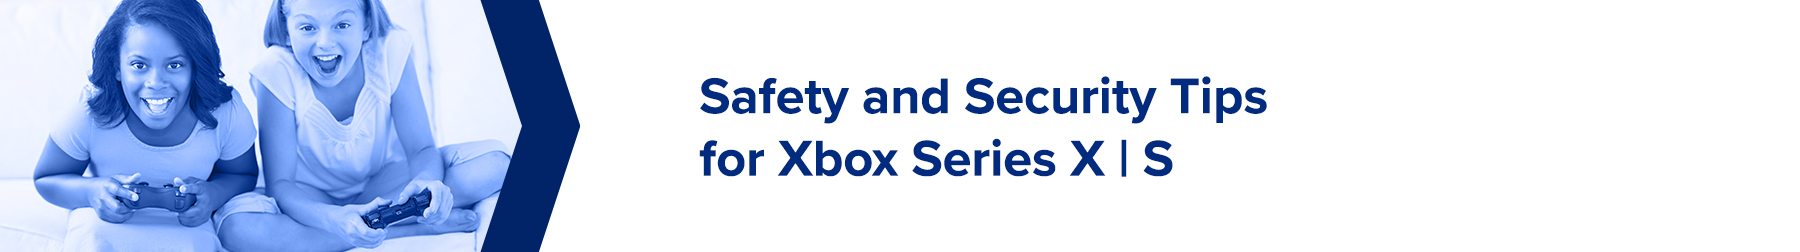 Safety Tips for Xbox Series X | S